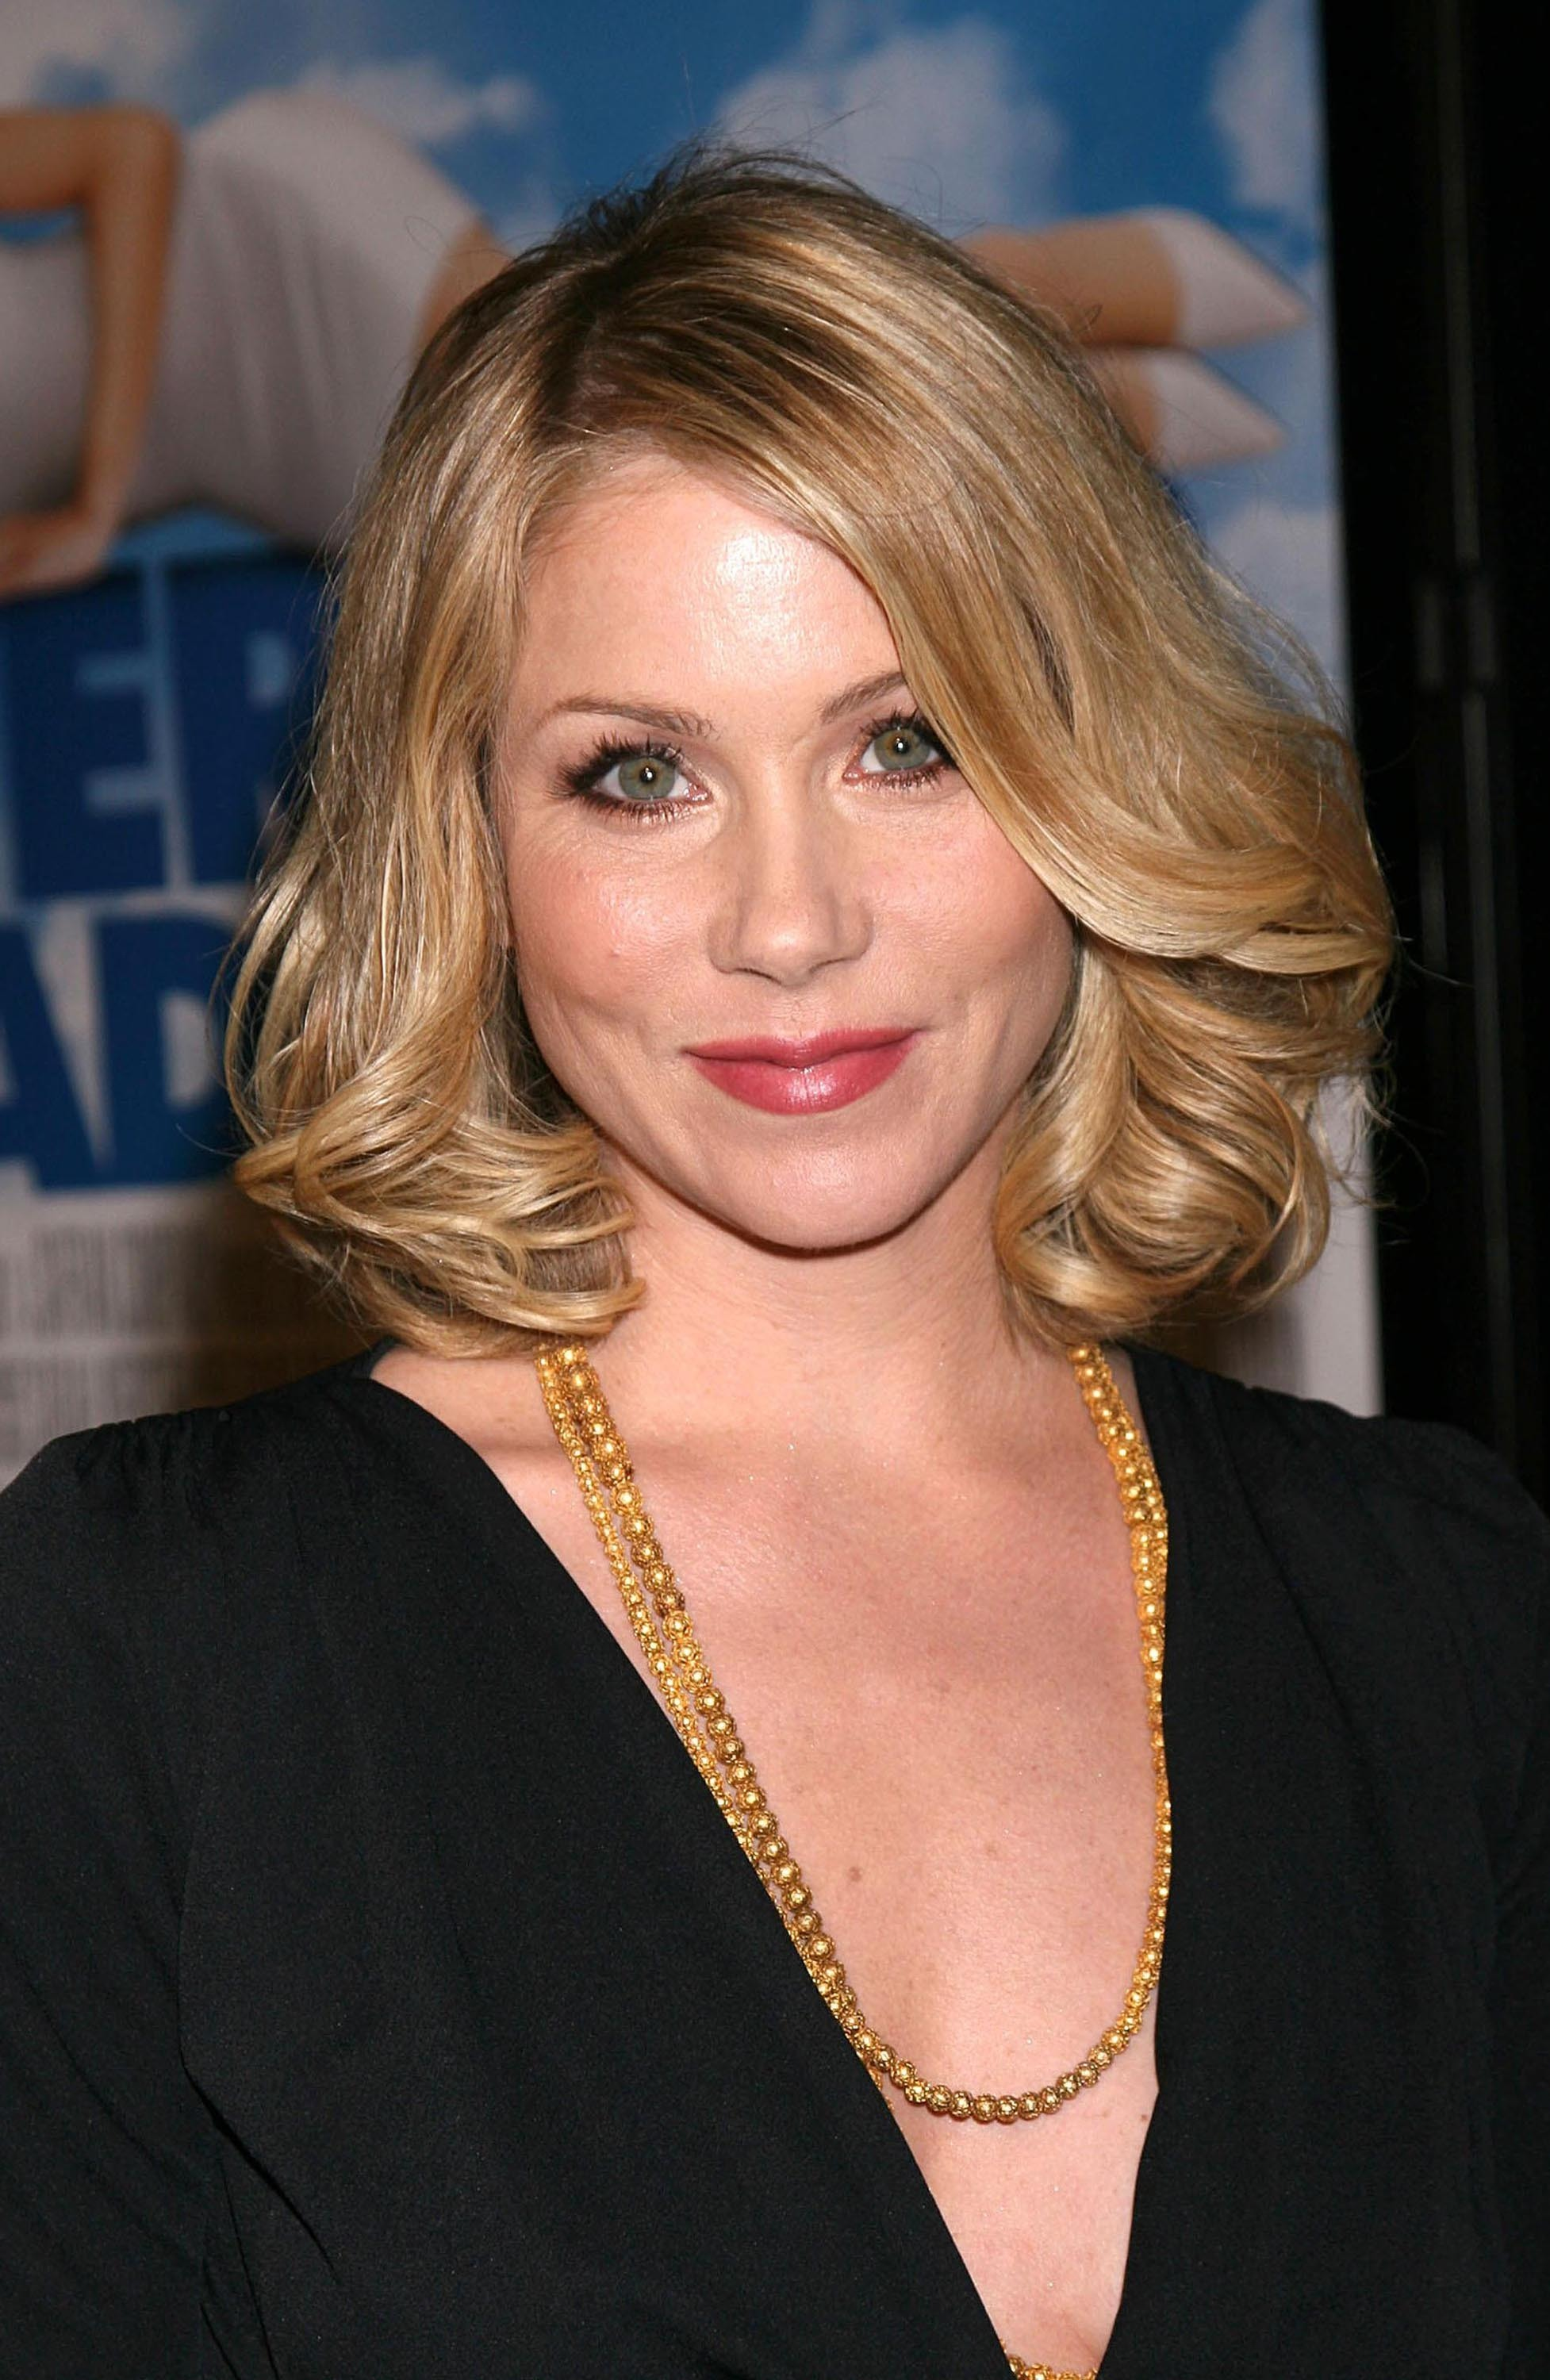 Christina Applegate born November 25, 1971 (age 46) Christina Applegate born November 25, 1971 (age 46) new foto